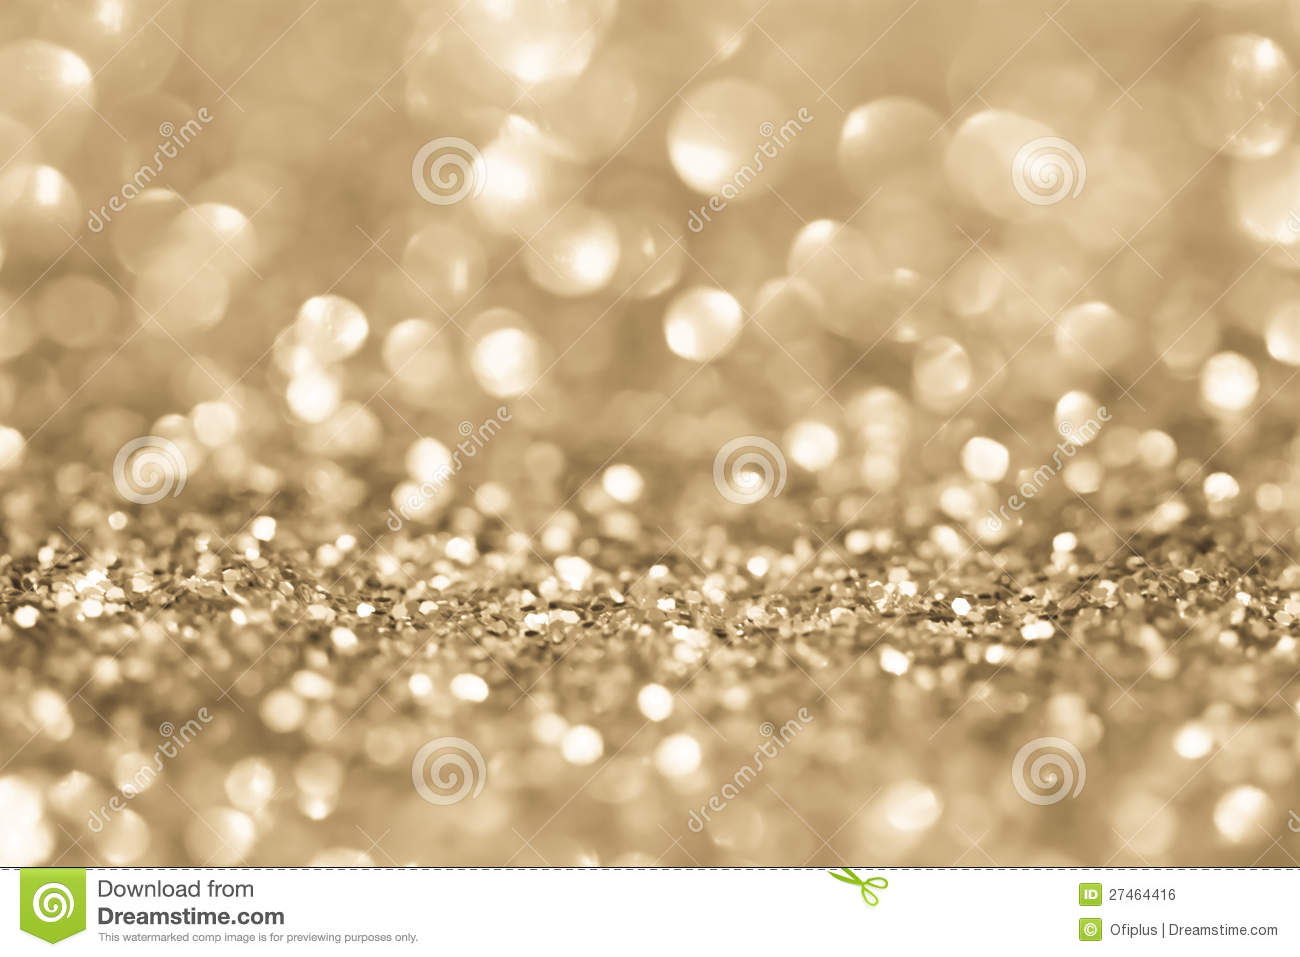 Rose Gold Glitter Background image gallery 1300x957